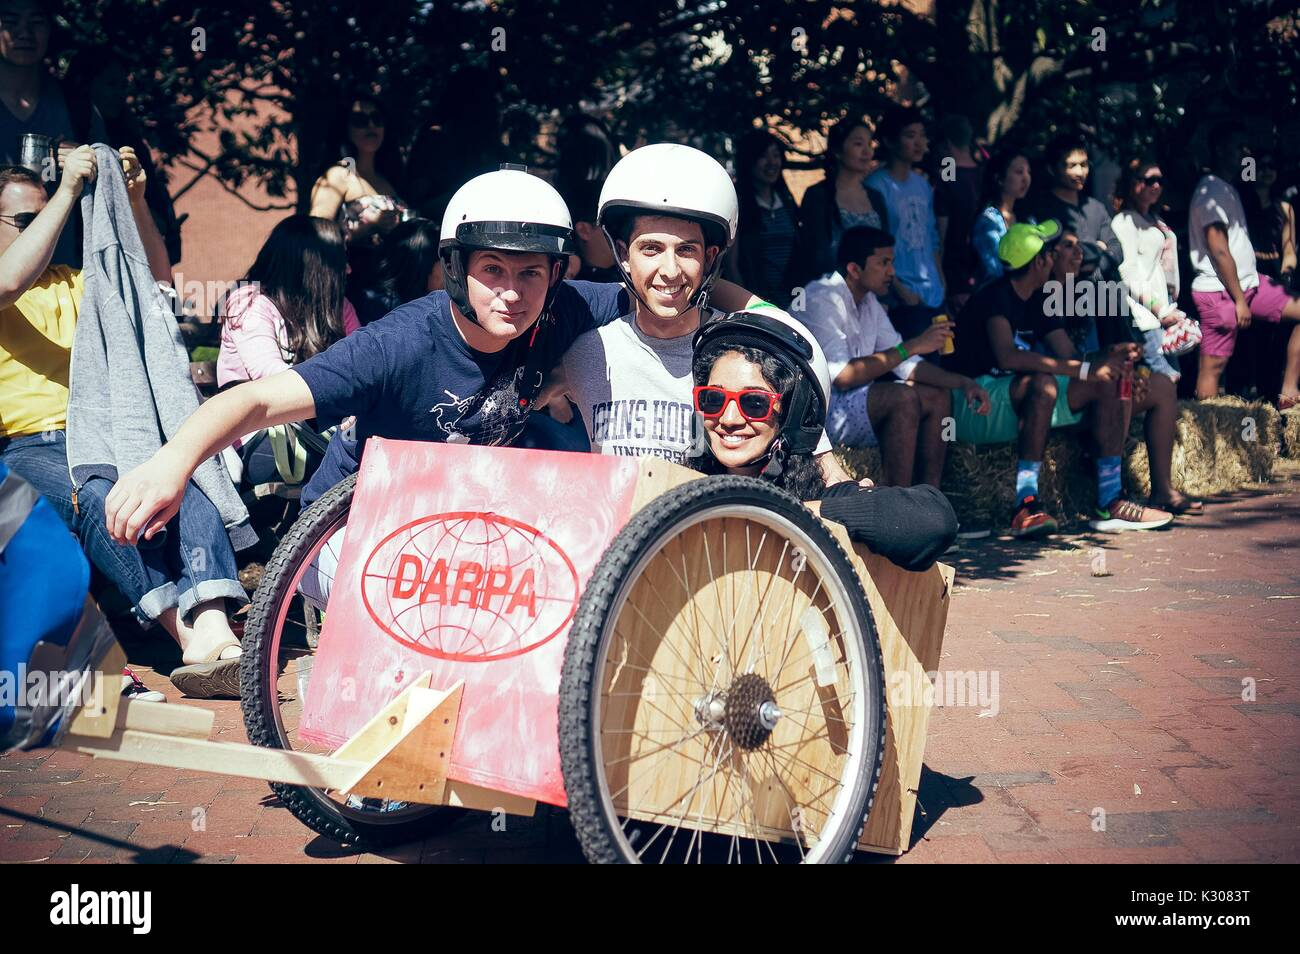 Three students wearing helmets pose for a photo from inside a wooden cart with wheels, as onlookers watch from the side in the shade, during a carnival game at Spring Fair, a student-run spring carnival at Johns Hopkins University, Baltimore, Maryland, April, 2016. Courtesy Eric Chen. - Stock Image